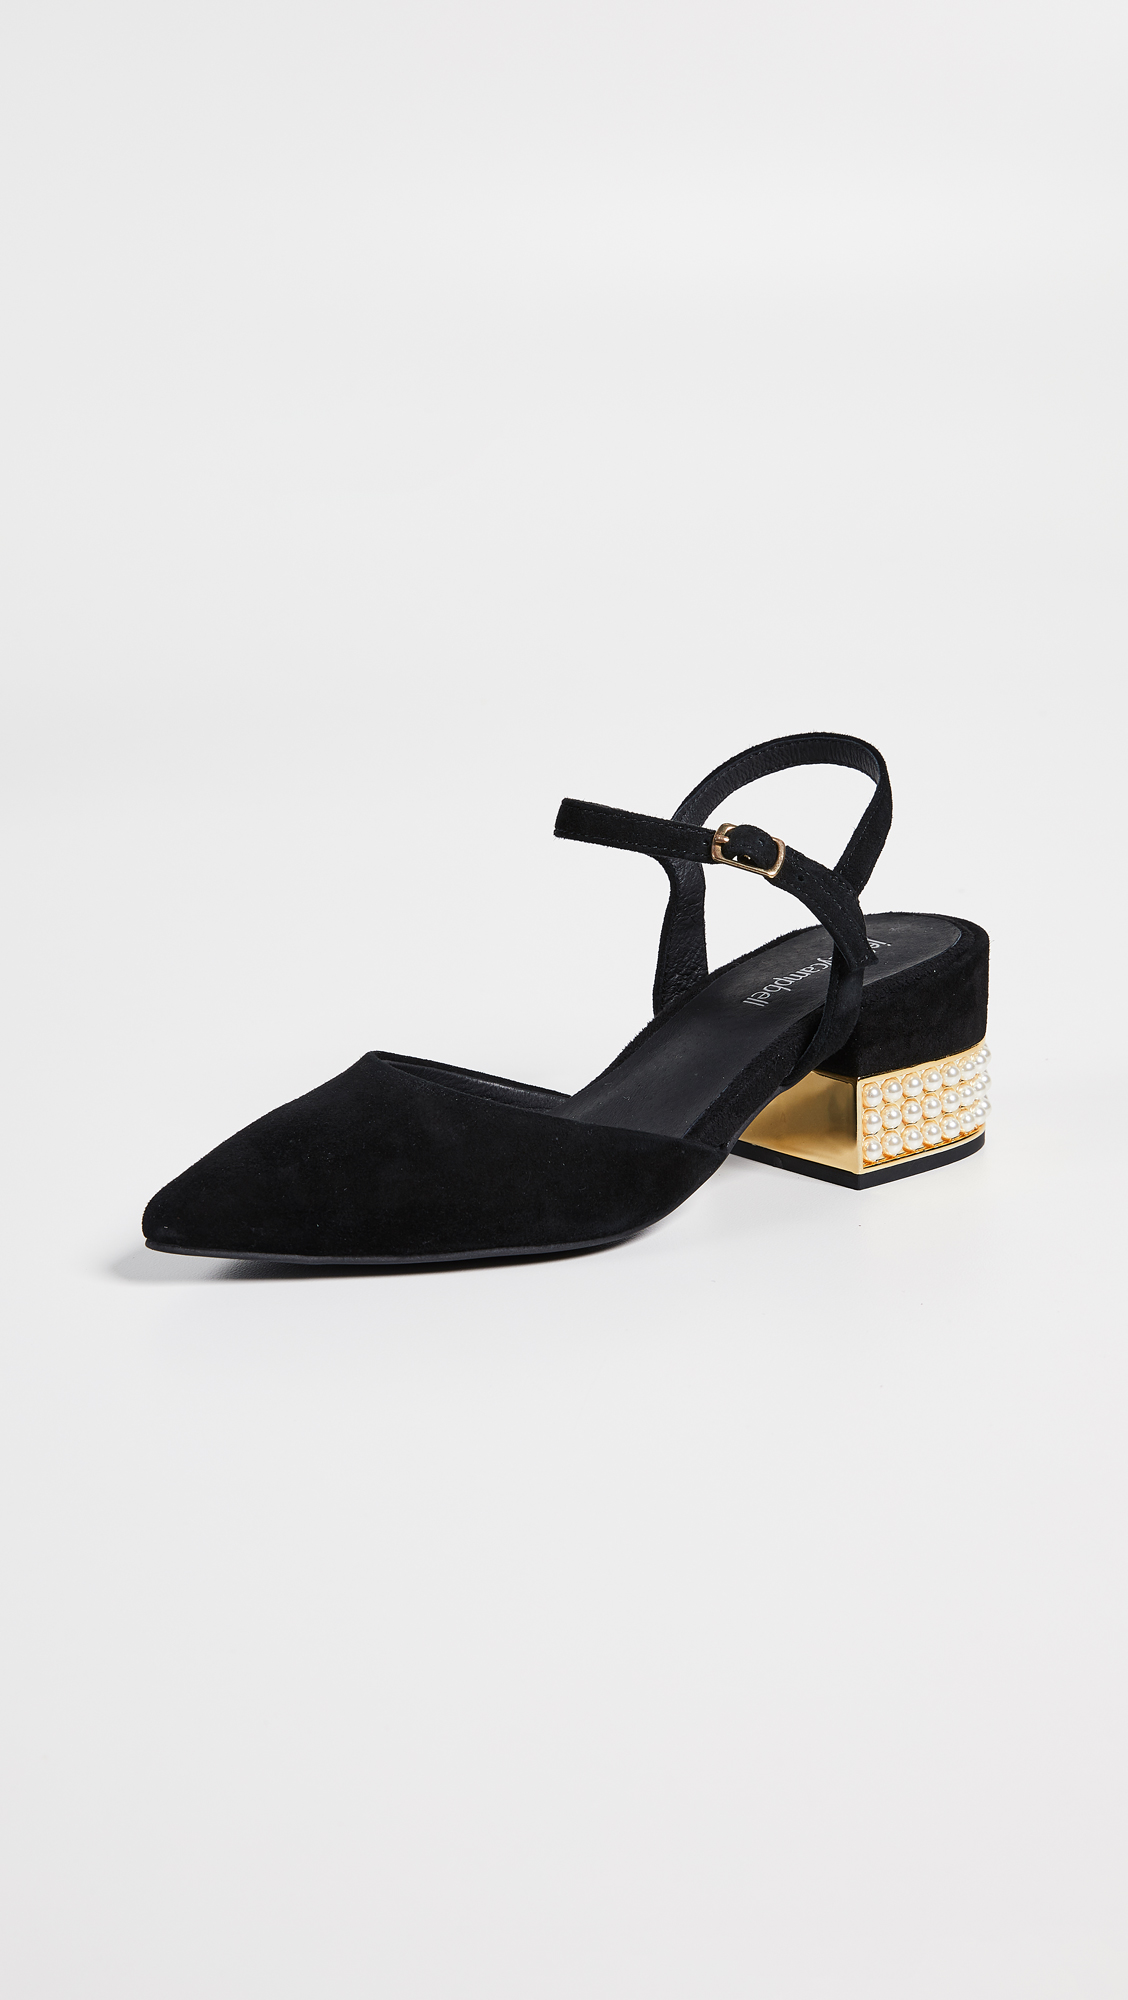 Jeffrey Campbell Tulip Ankle Strap Pumps Shopbop Mary Janes Straps Circle Block Pointed Toe Wedges Shoes Black